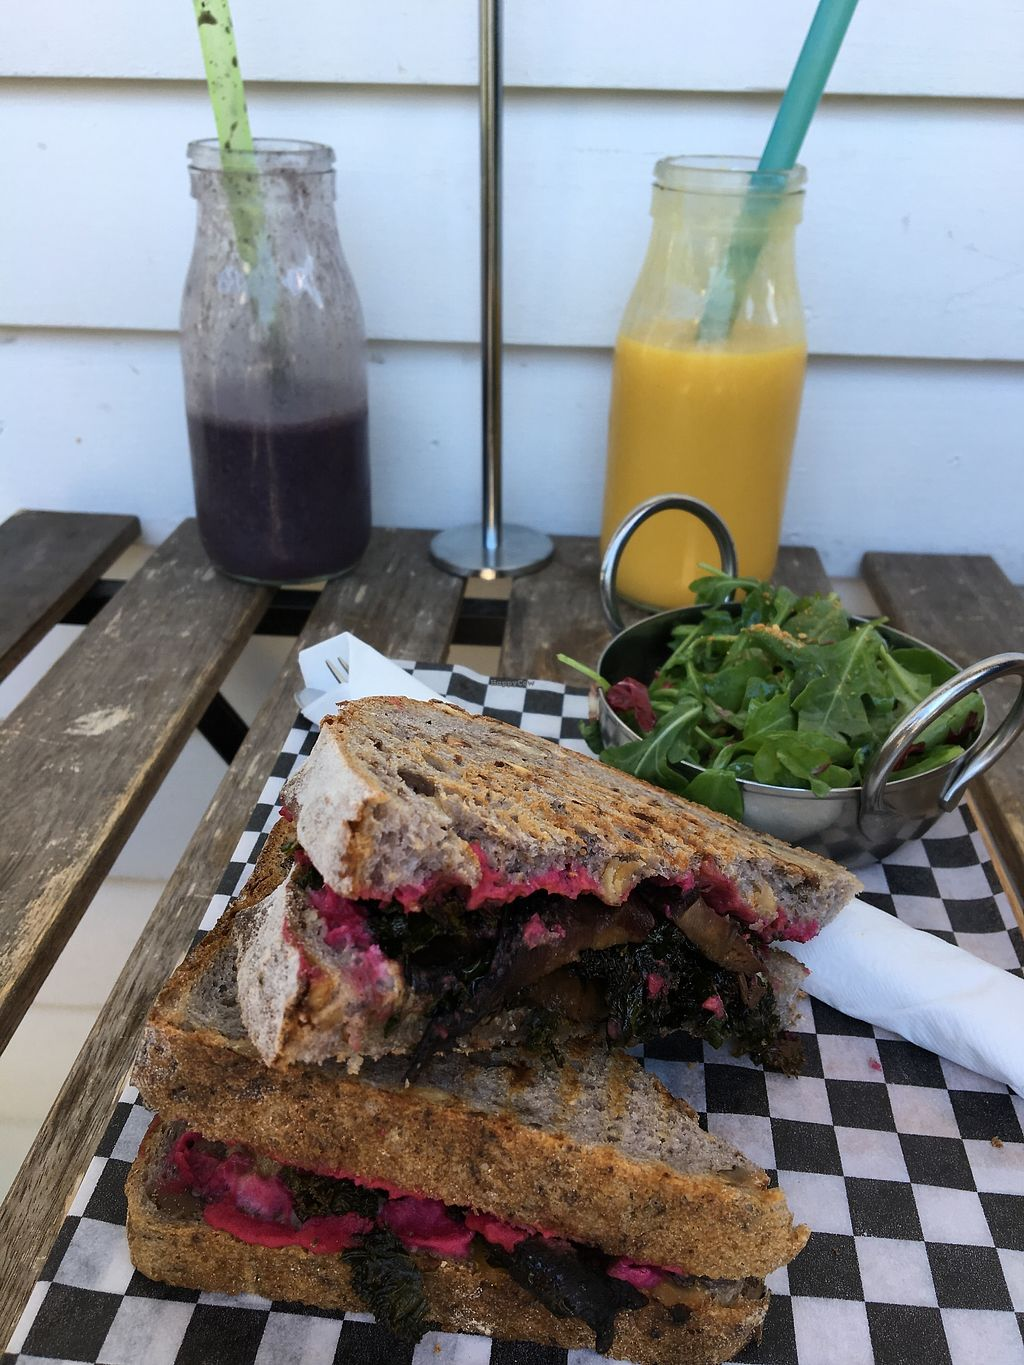 """Photo of Saint Laurent Cafe-Boutique  by <a href=""""/members/profile/Marty_G"""">Marty_G</a> <br/>Vegan grilled """"cheese """" and smoothies made with almond milk <br/> July 4, 2017  - <a href='/contact/abuse/image/95051/276642'>Report</a>"""